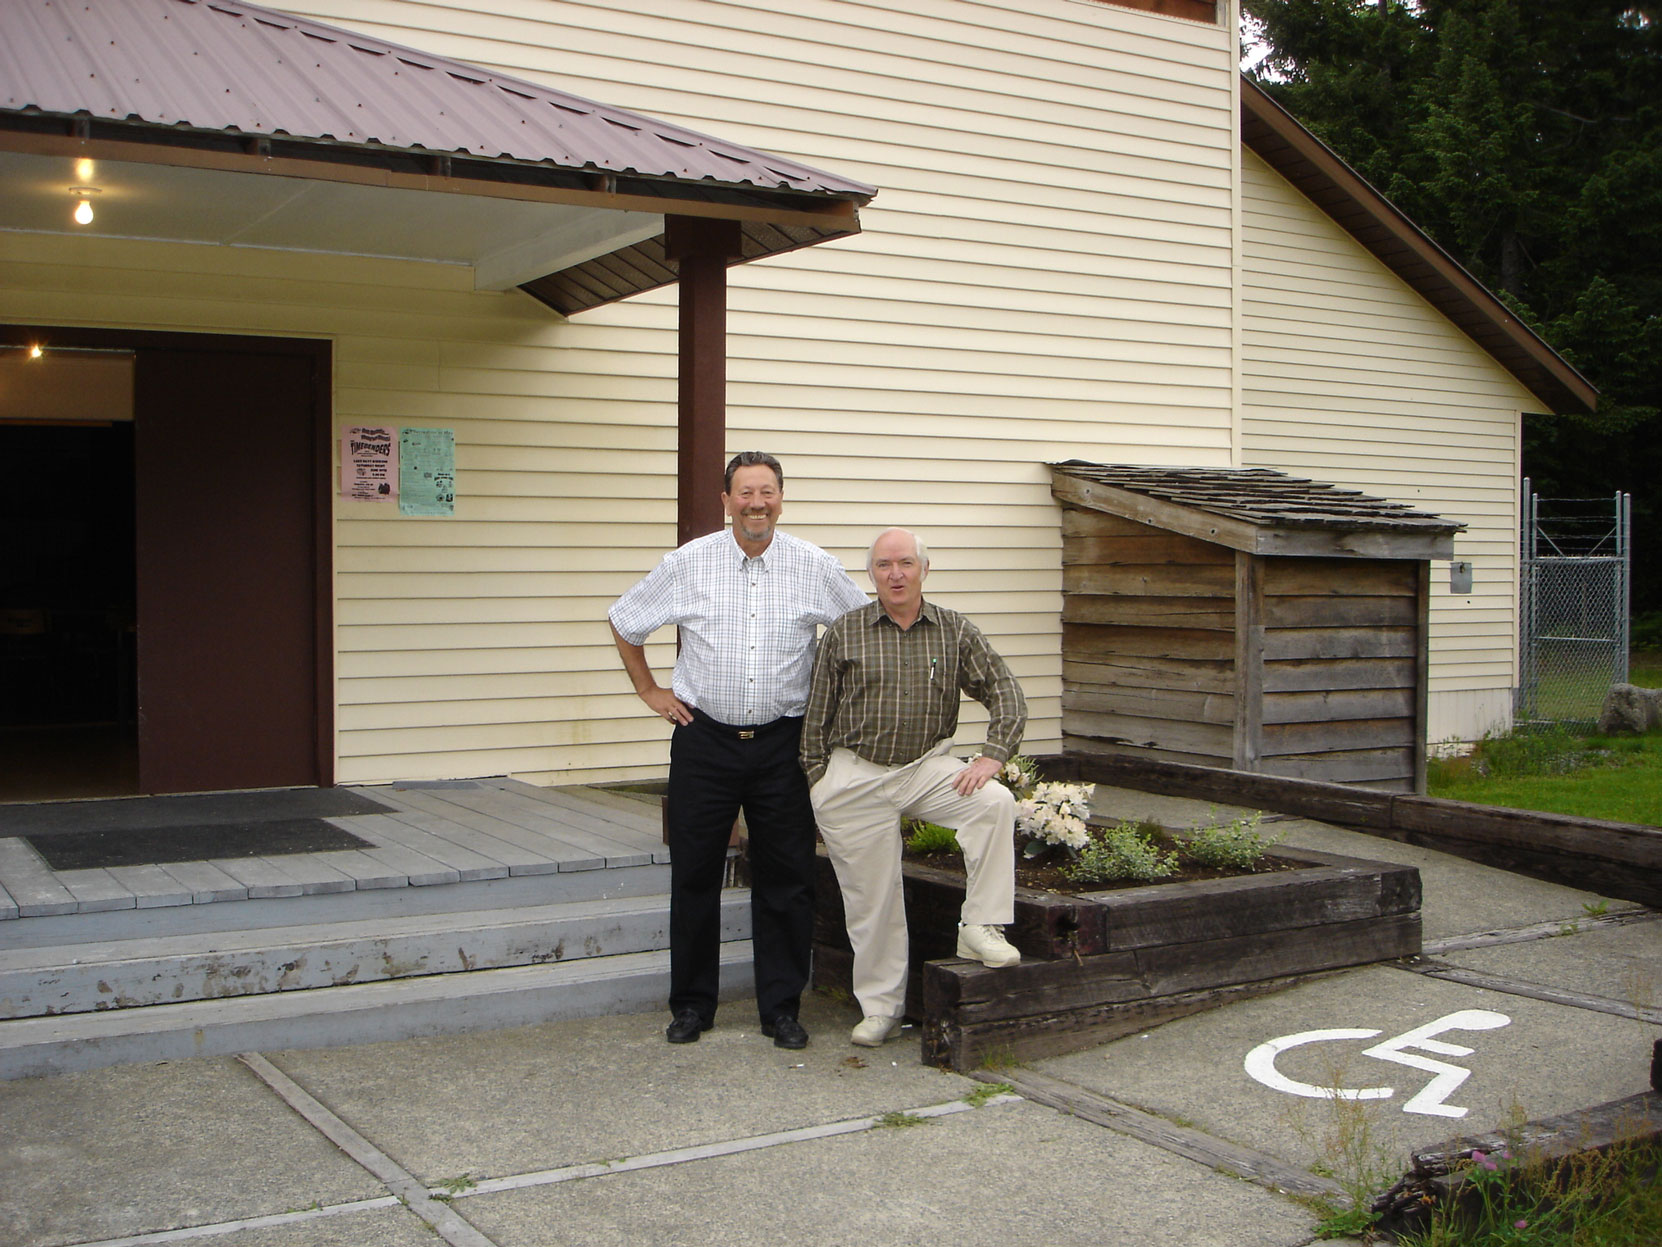 Bob Crawford (right) and Cecil Ashley at the Hillcrest Lumber Co. Employees Reunion in 2006. (photo courtesy of Cecil Ashley)